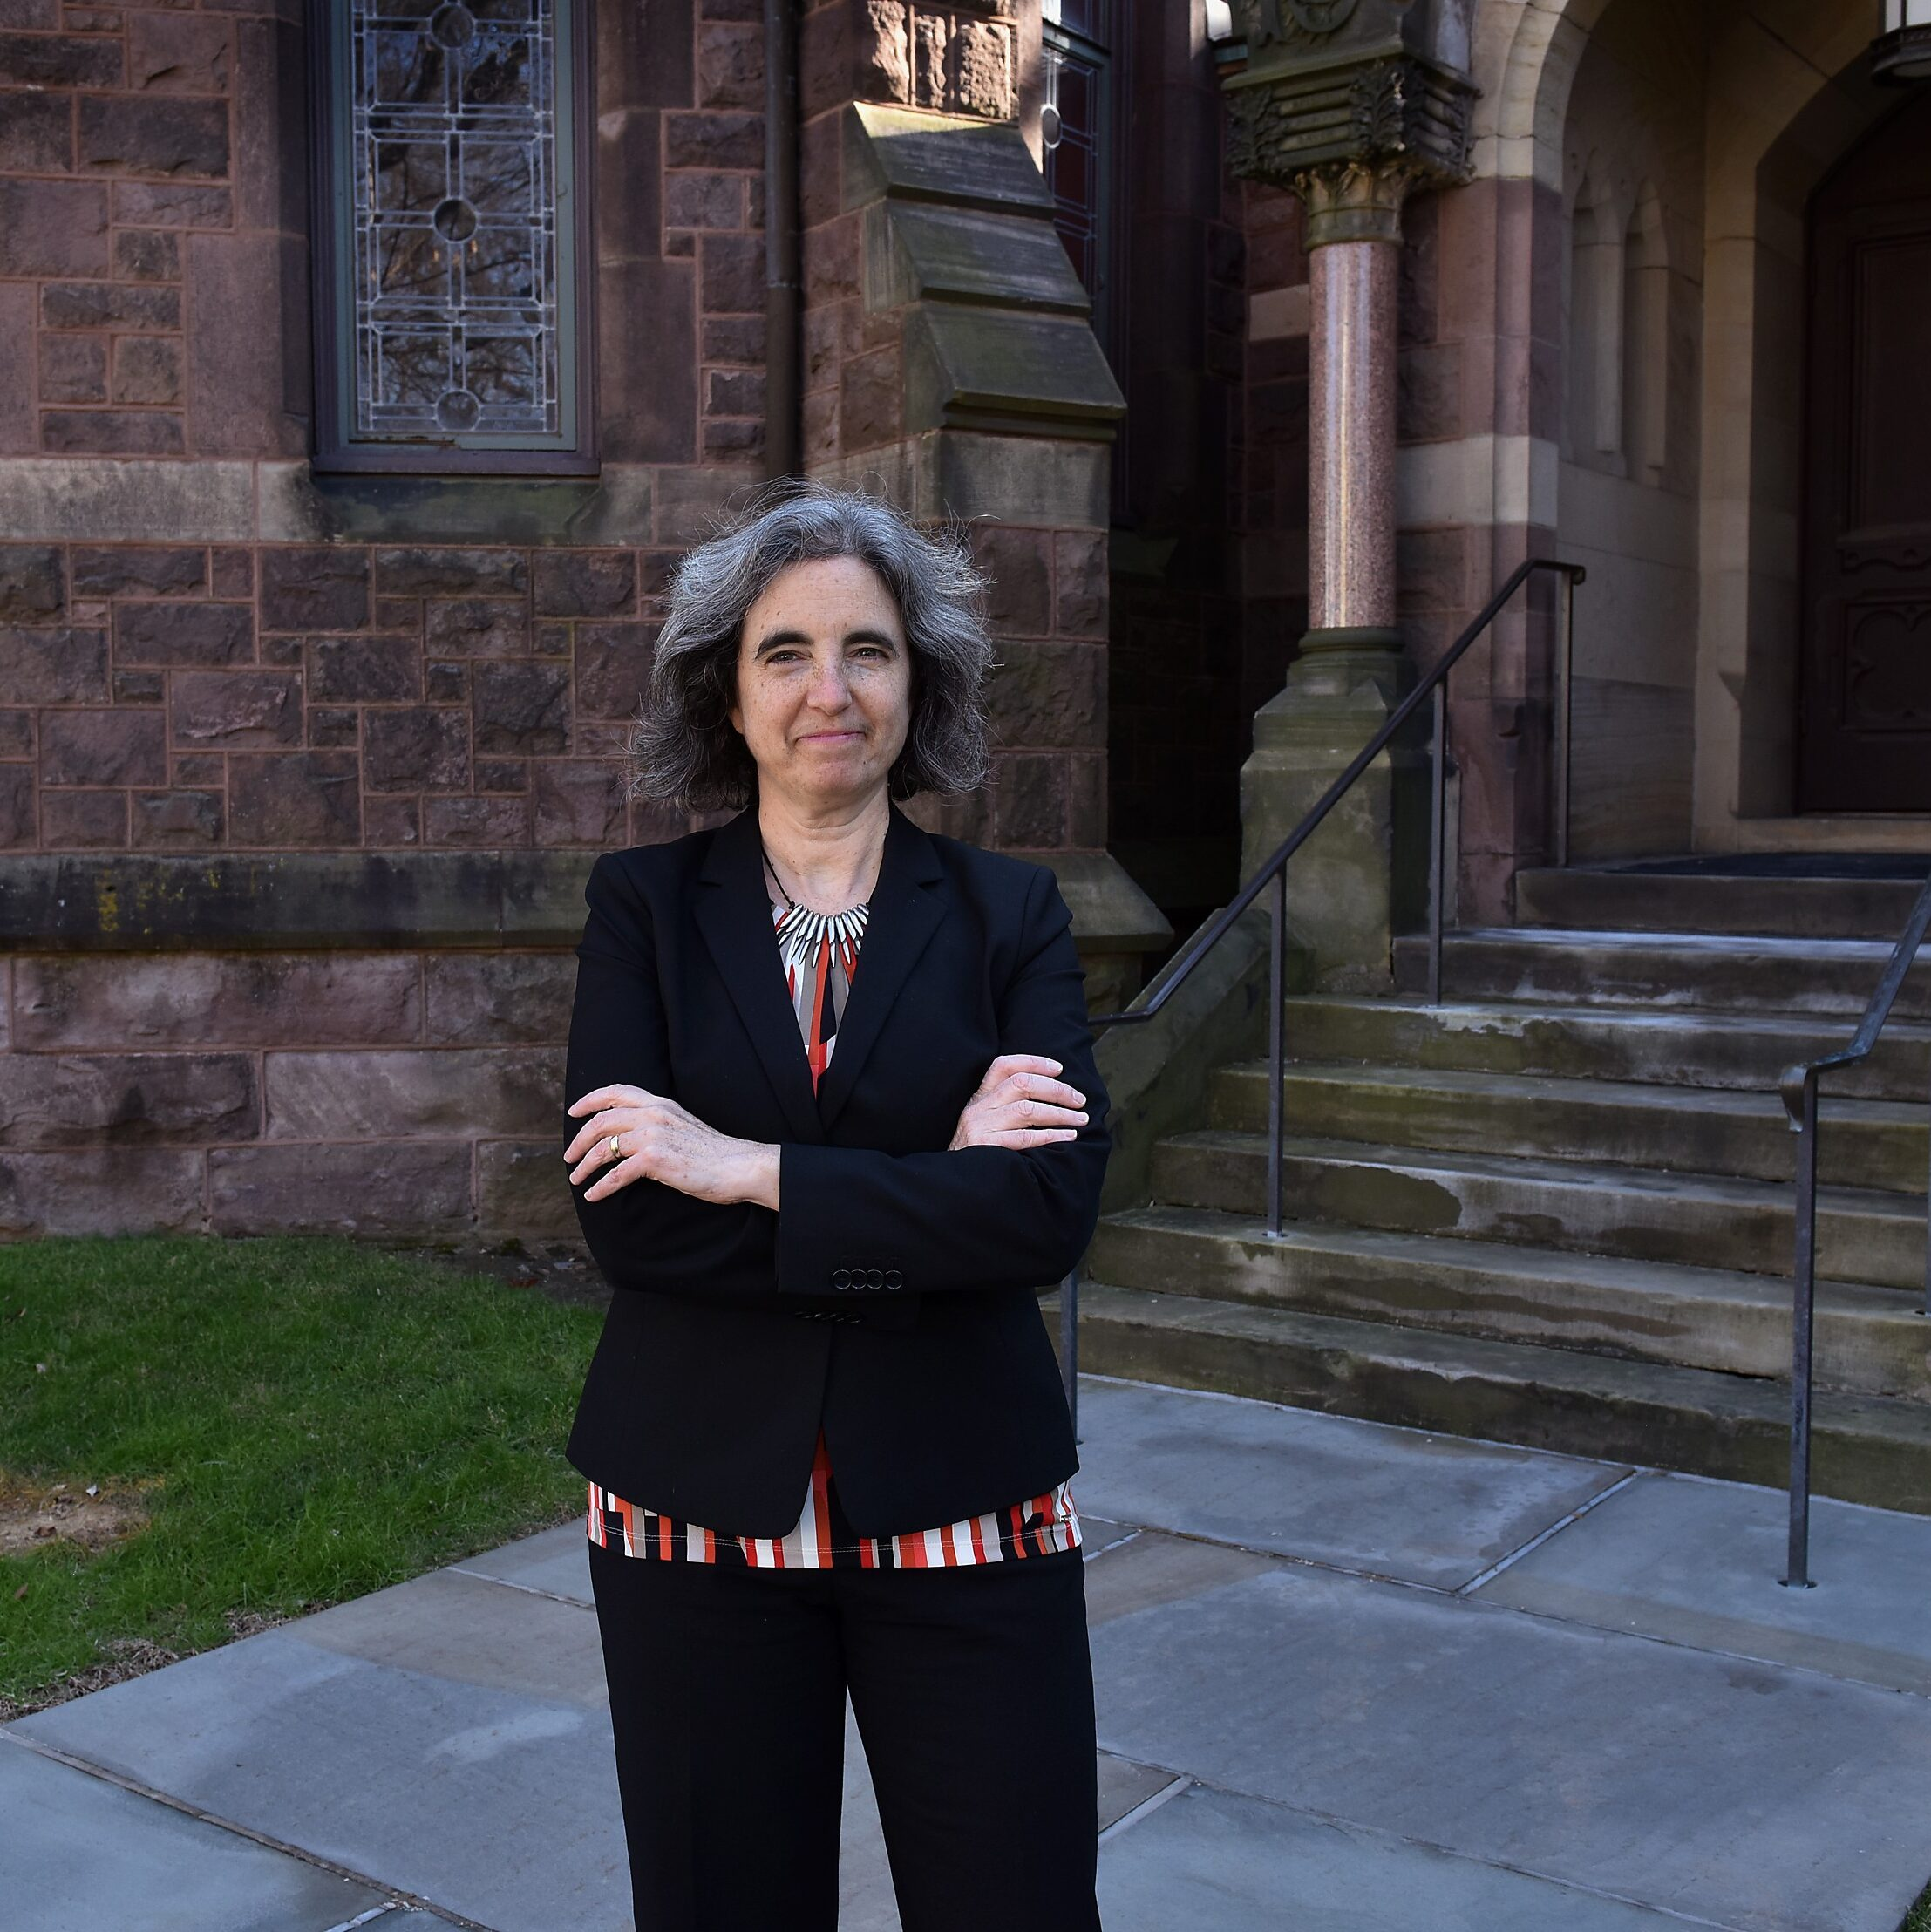 Alison Isenberg, Professor of History; Co-Director, Princeton-Mellon Initiative in Architecture, Urbanism, and the Humanities. Taken Feb 6, 2017.